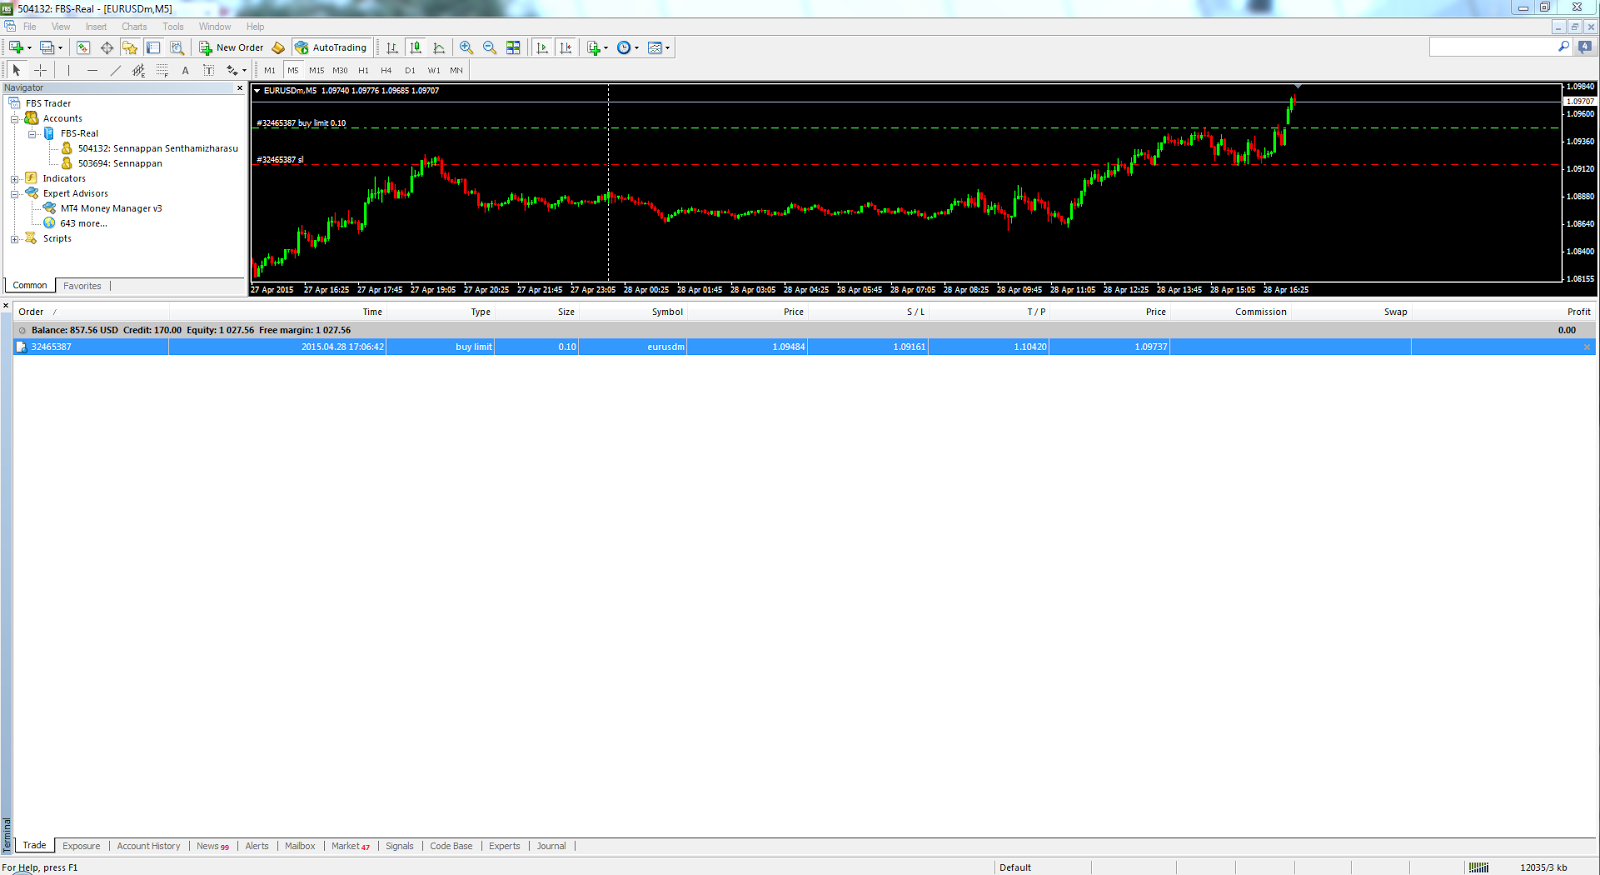 Forex Day Trading,Forex Fx,Forex Futures,Best Foreign Exchange Rates,Forex Currency Exchange